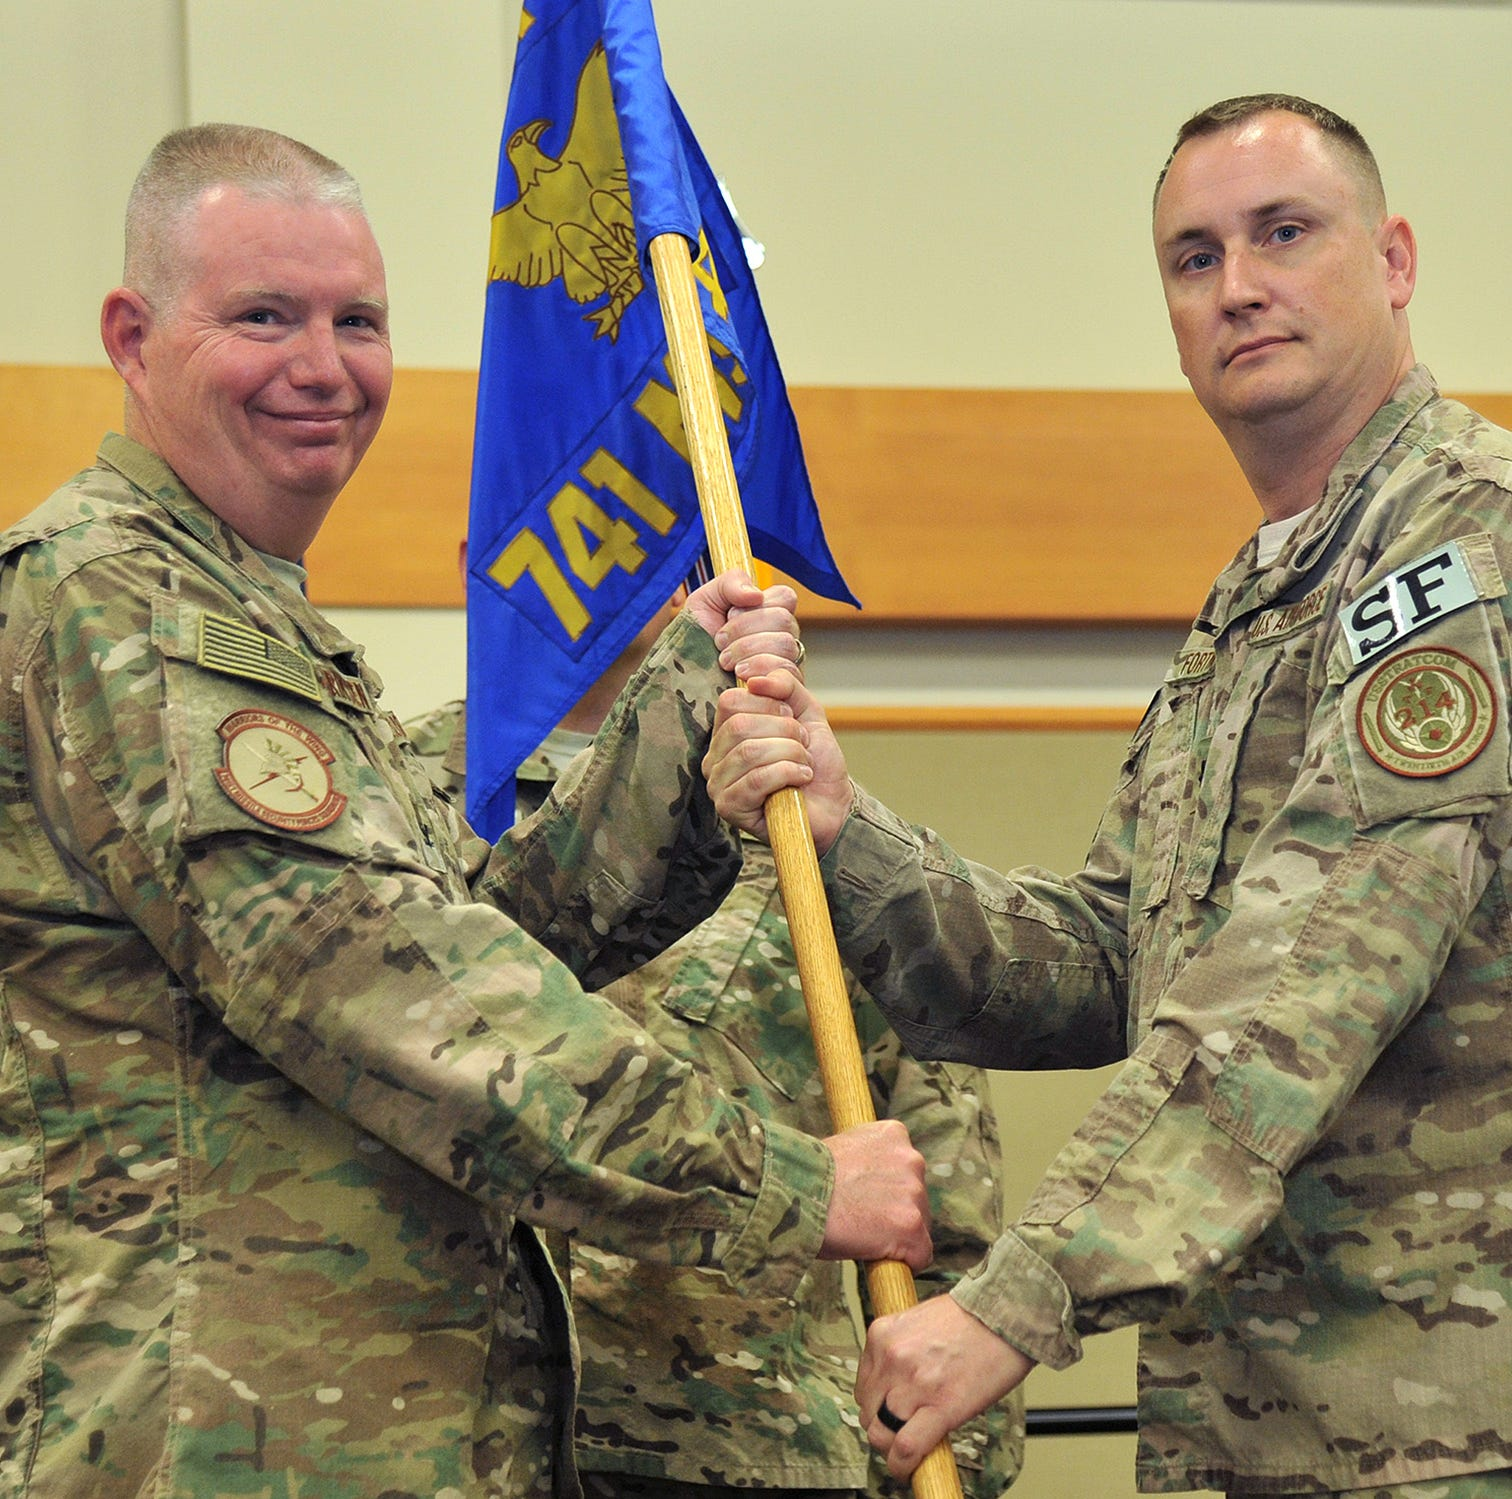 Commander of 741st Missile Security Forces Group at Malmstrom 'relieved of duty'